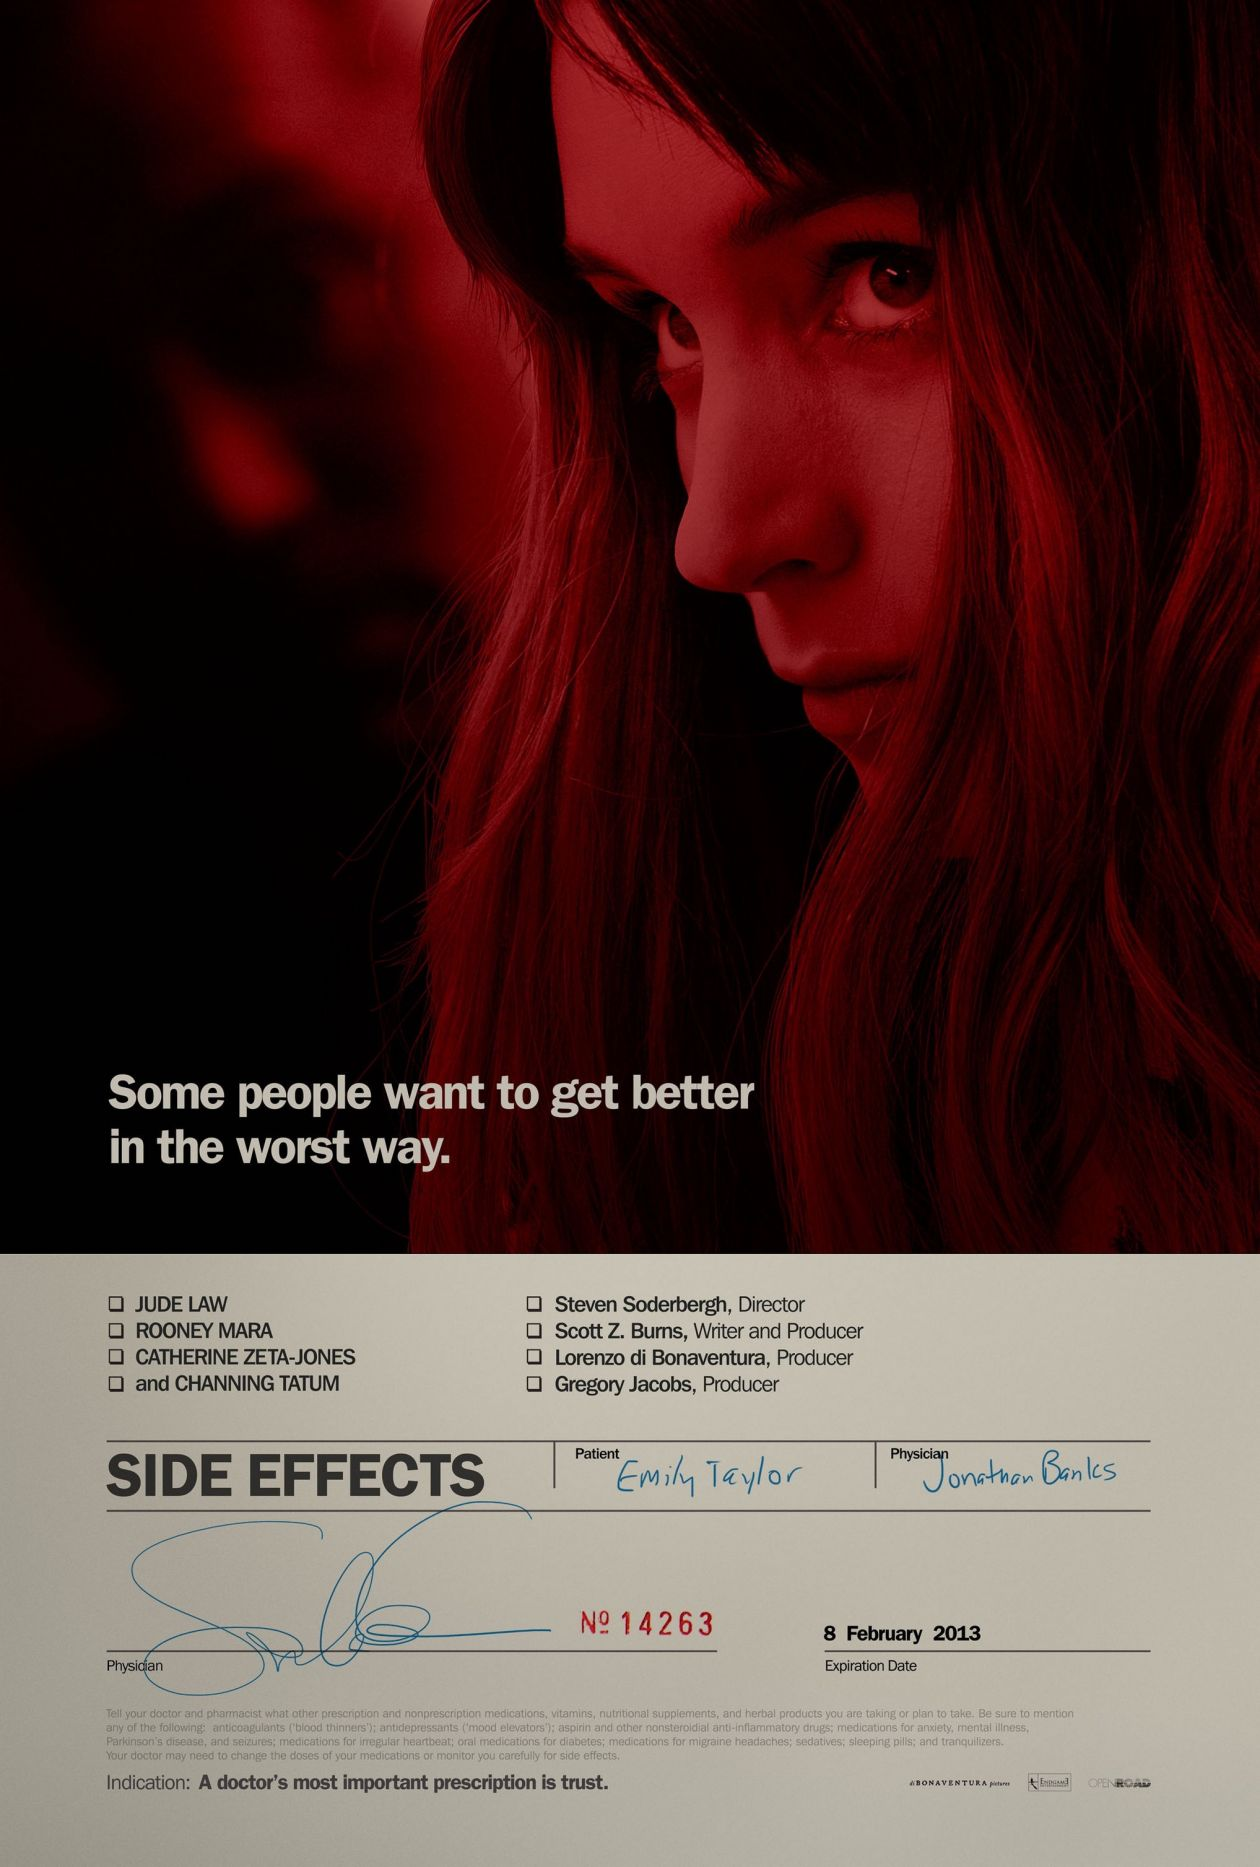 Rooney Mara  Side Effects / Effets secondaires | Steven Soderbergh, 2013 / Teaser Movie Poster